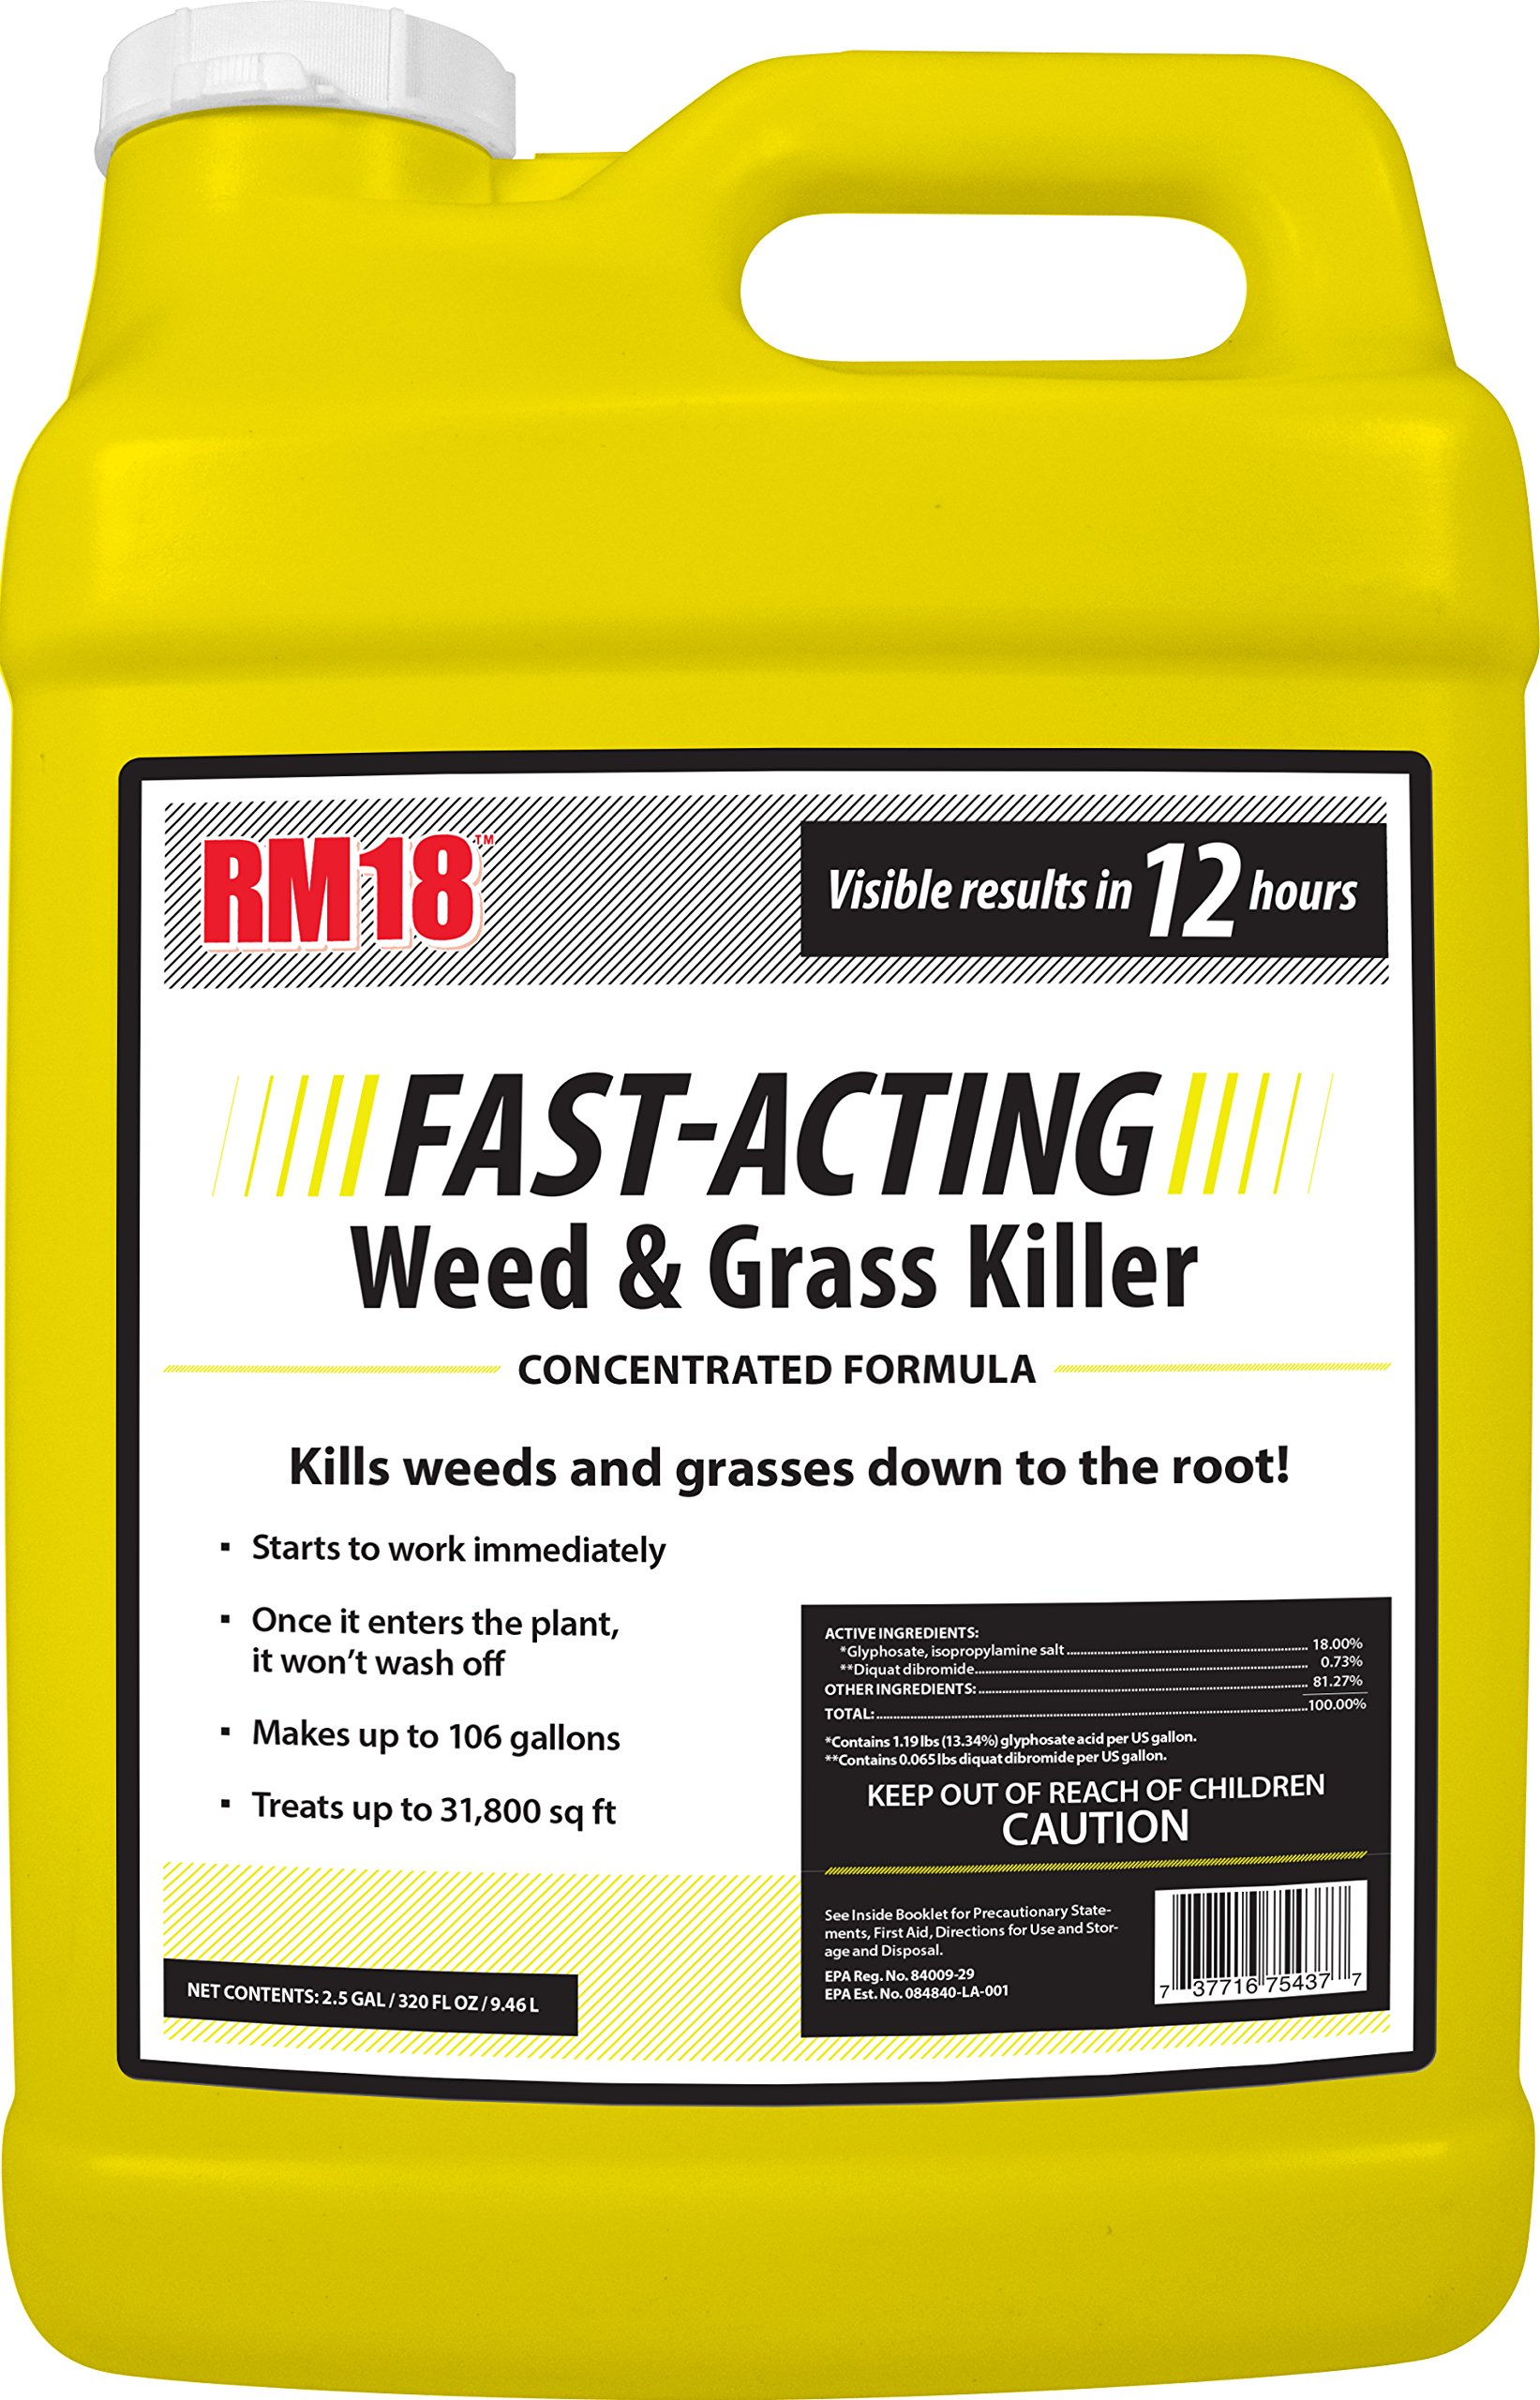 RM18 Fast-Acting Weed & Grass Killer Herbicide, 2.5-gallon